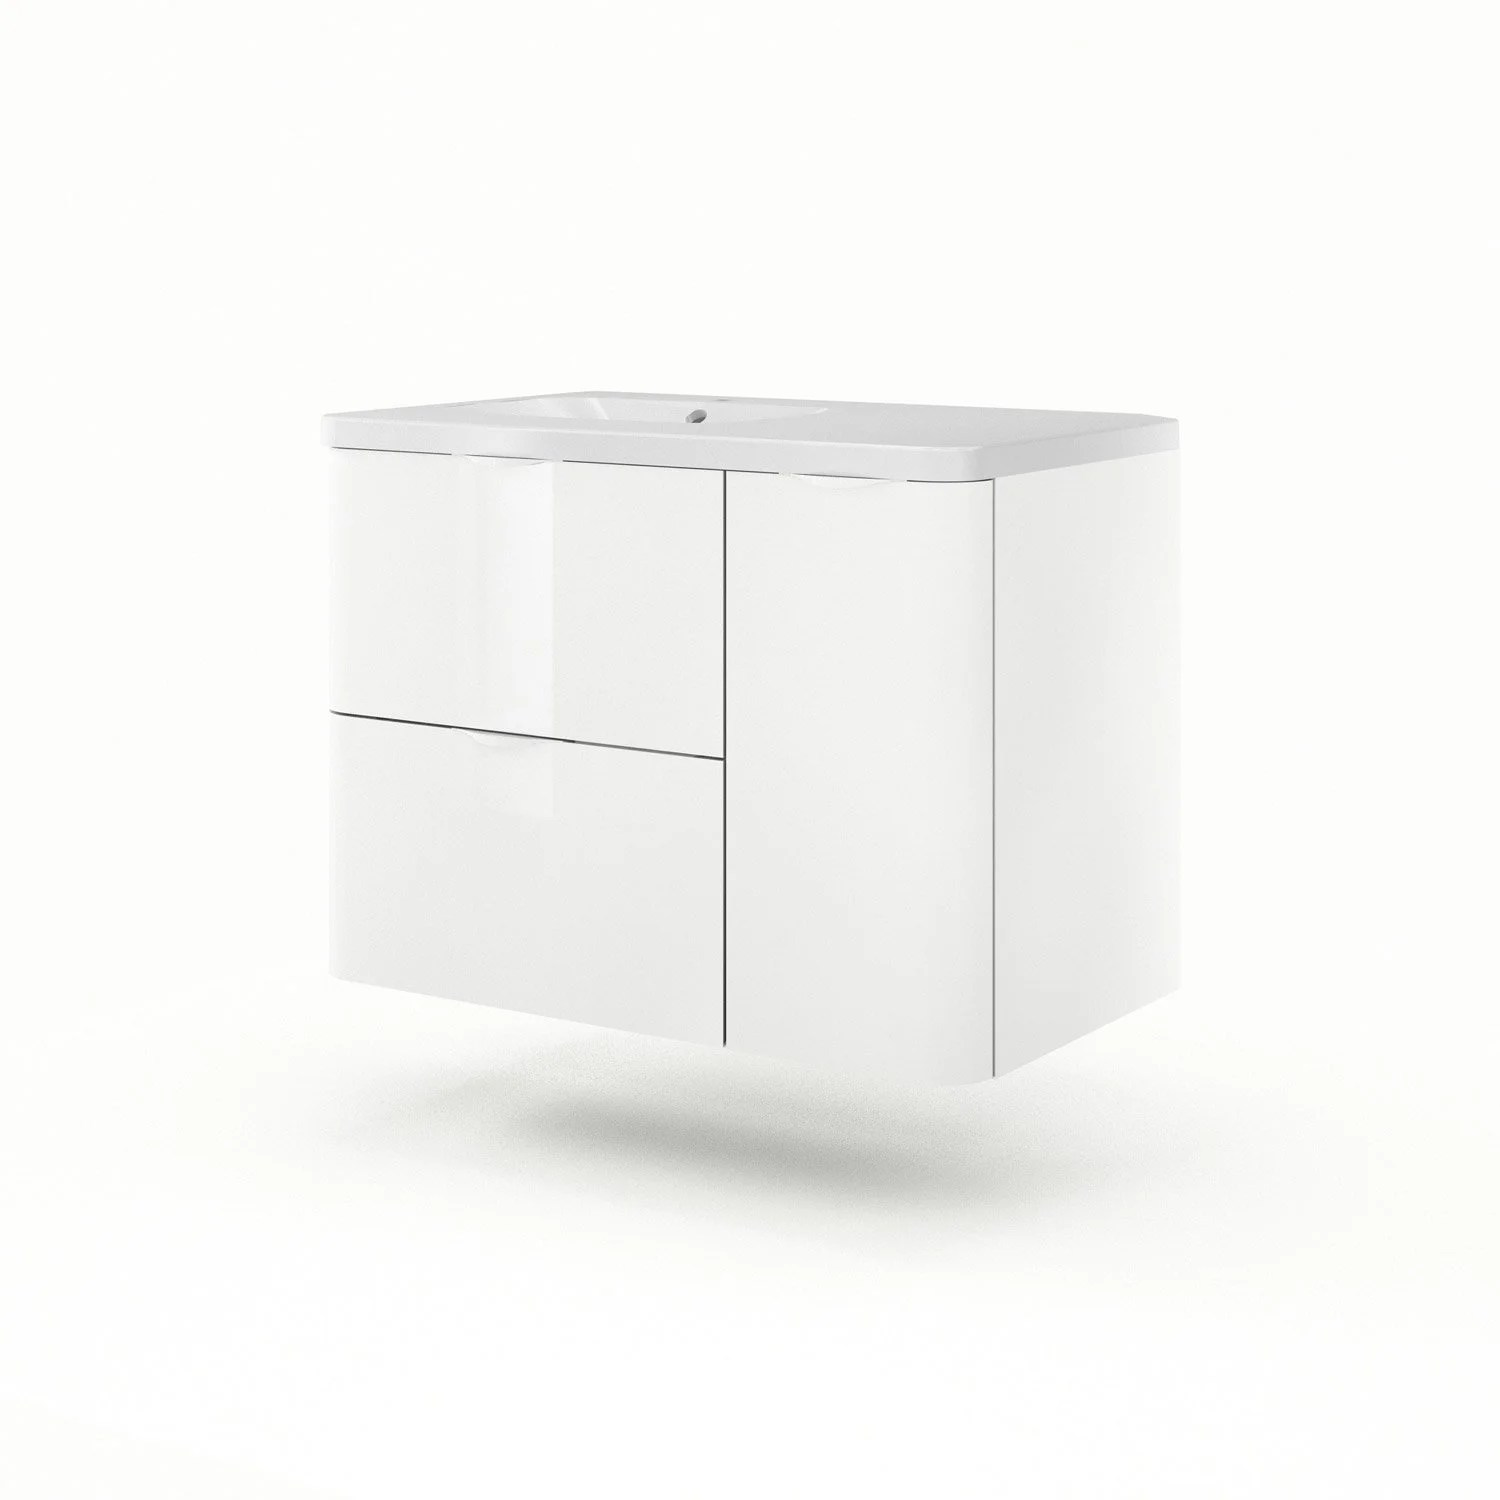 Meuble Vasque 90 Cm Meuble Vasque 90 Cm Blanc Neo Shine Leroy Merlin